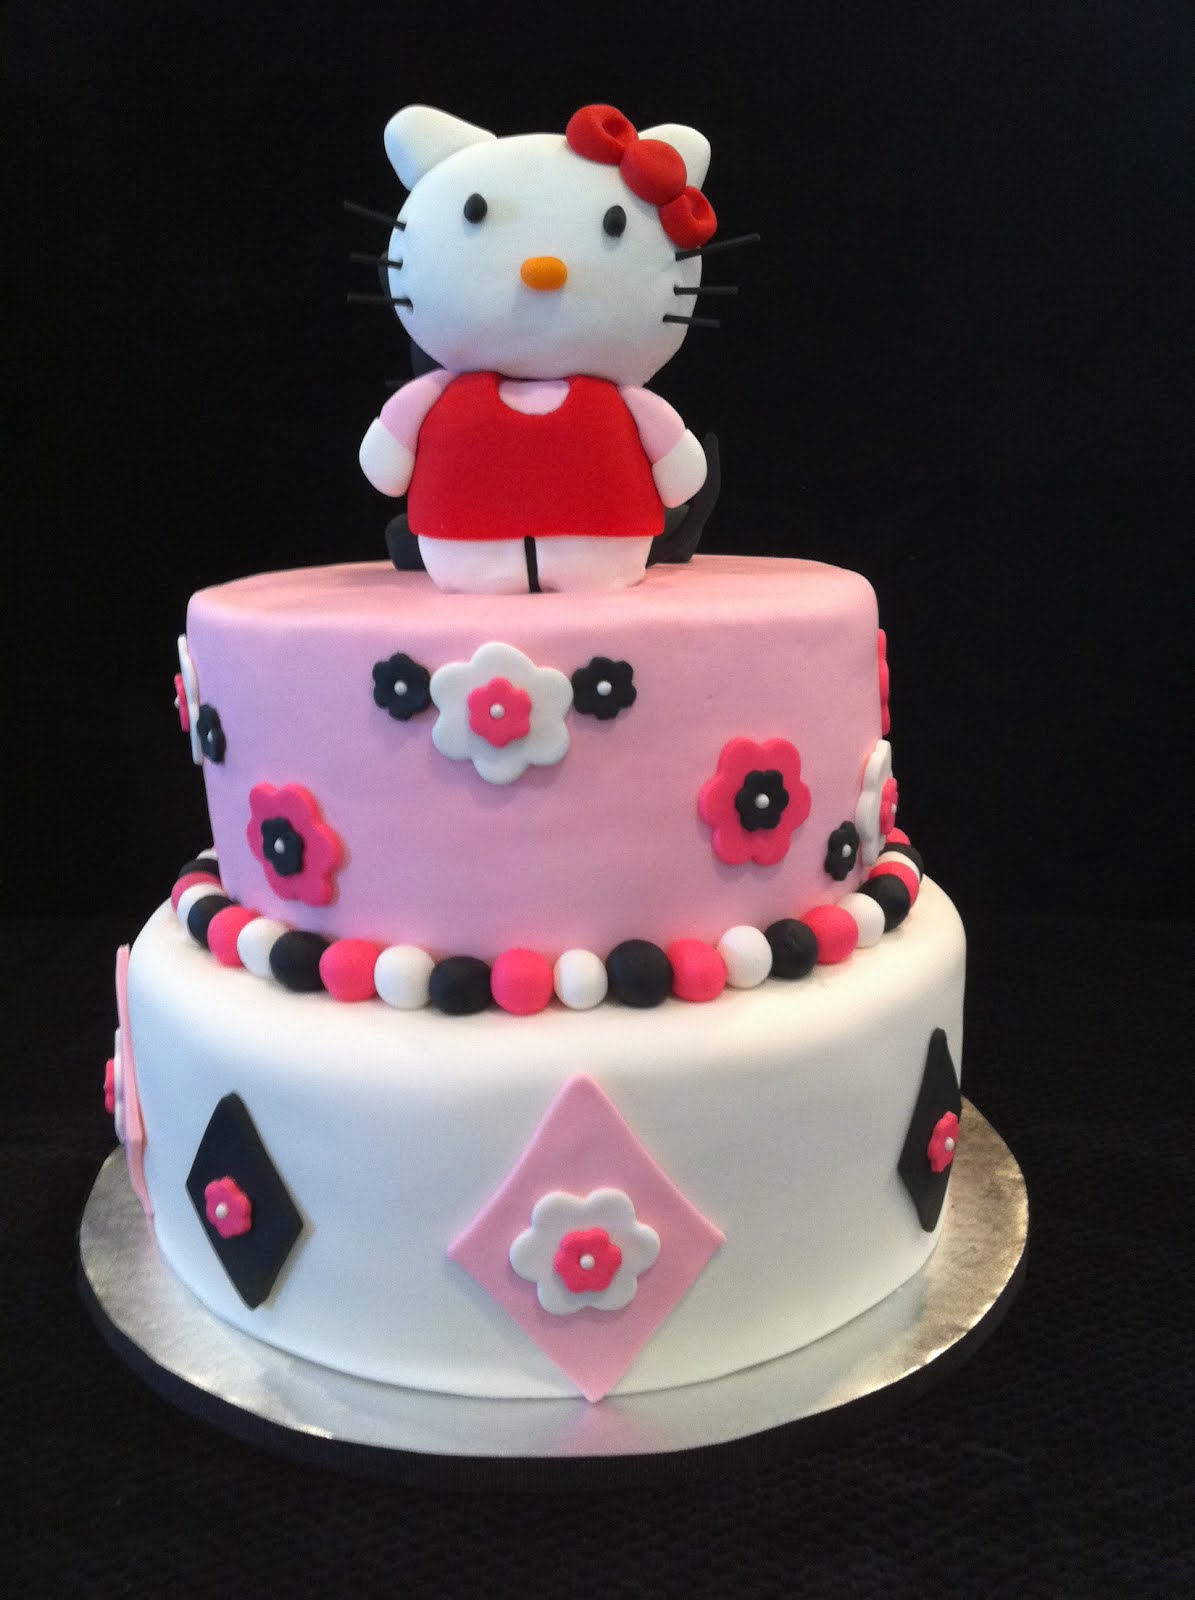 Tarynes Tasty Treats: Hello Kitty Tiered Birthday Cake